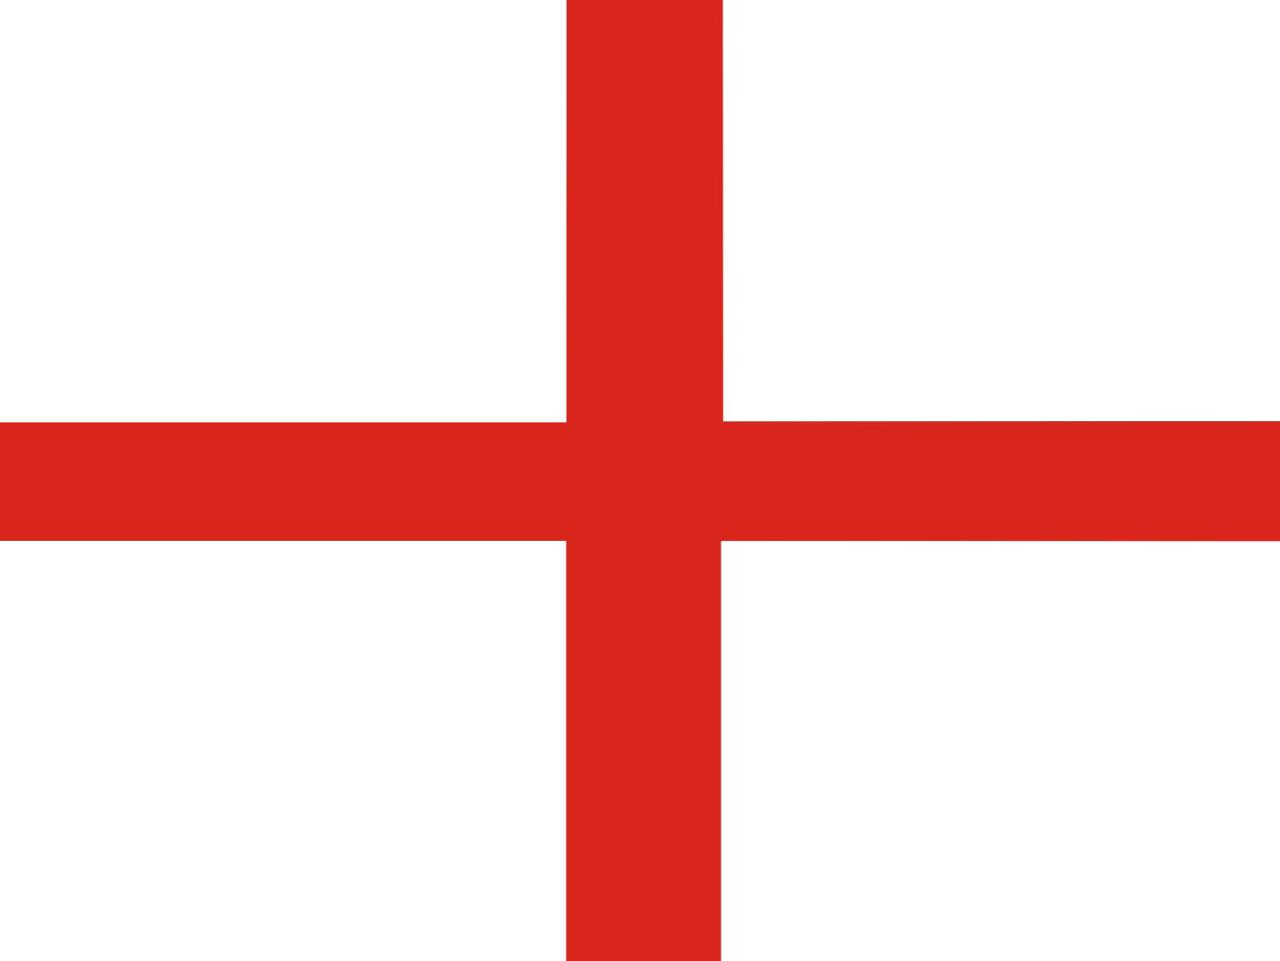 English Flag Pictures - ClipArt Best